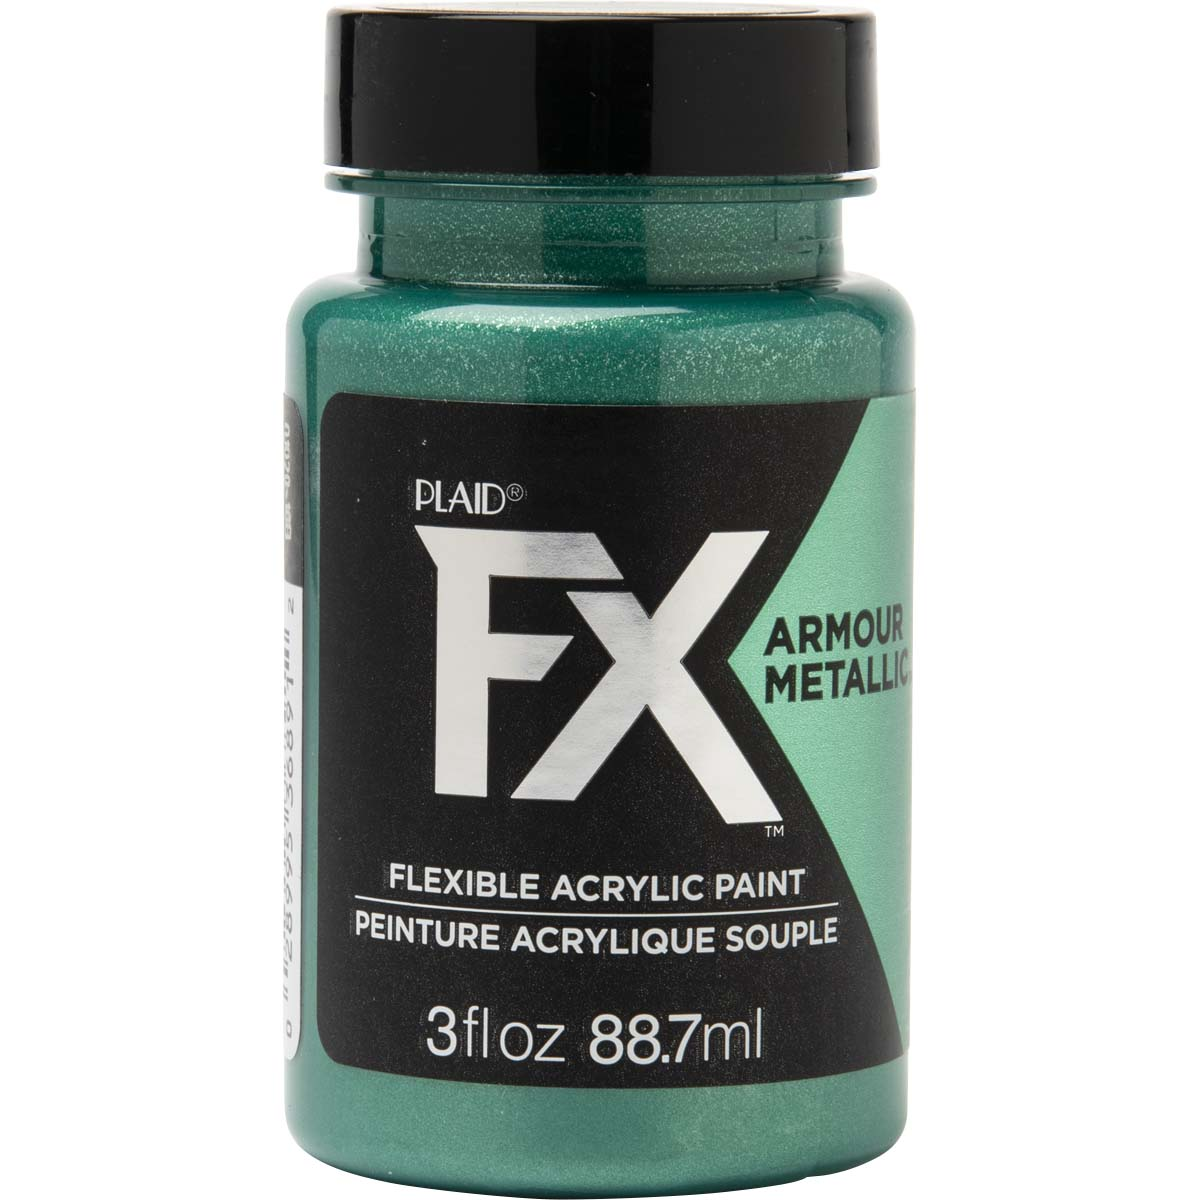 PlaidFX Armour Metal Flexible Acrylic Paint - Emerald, 3 oz. - 36891